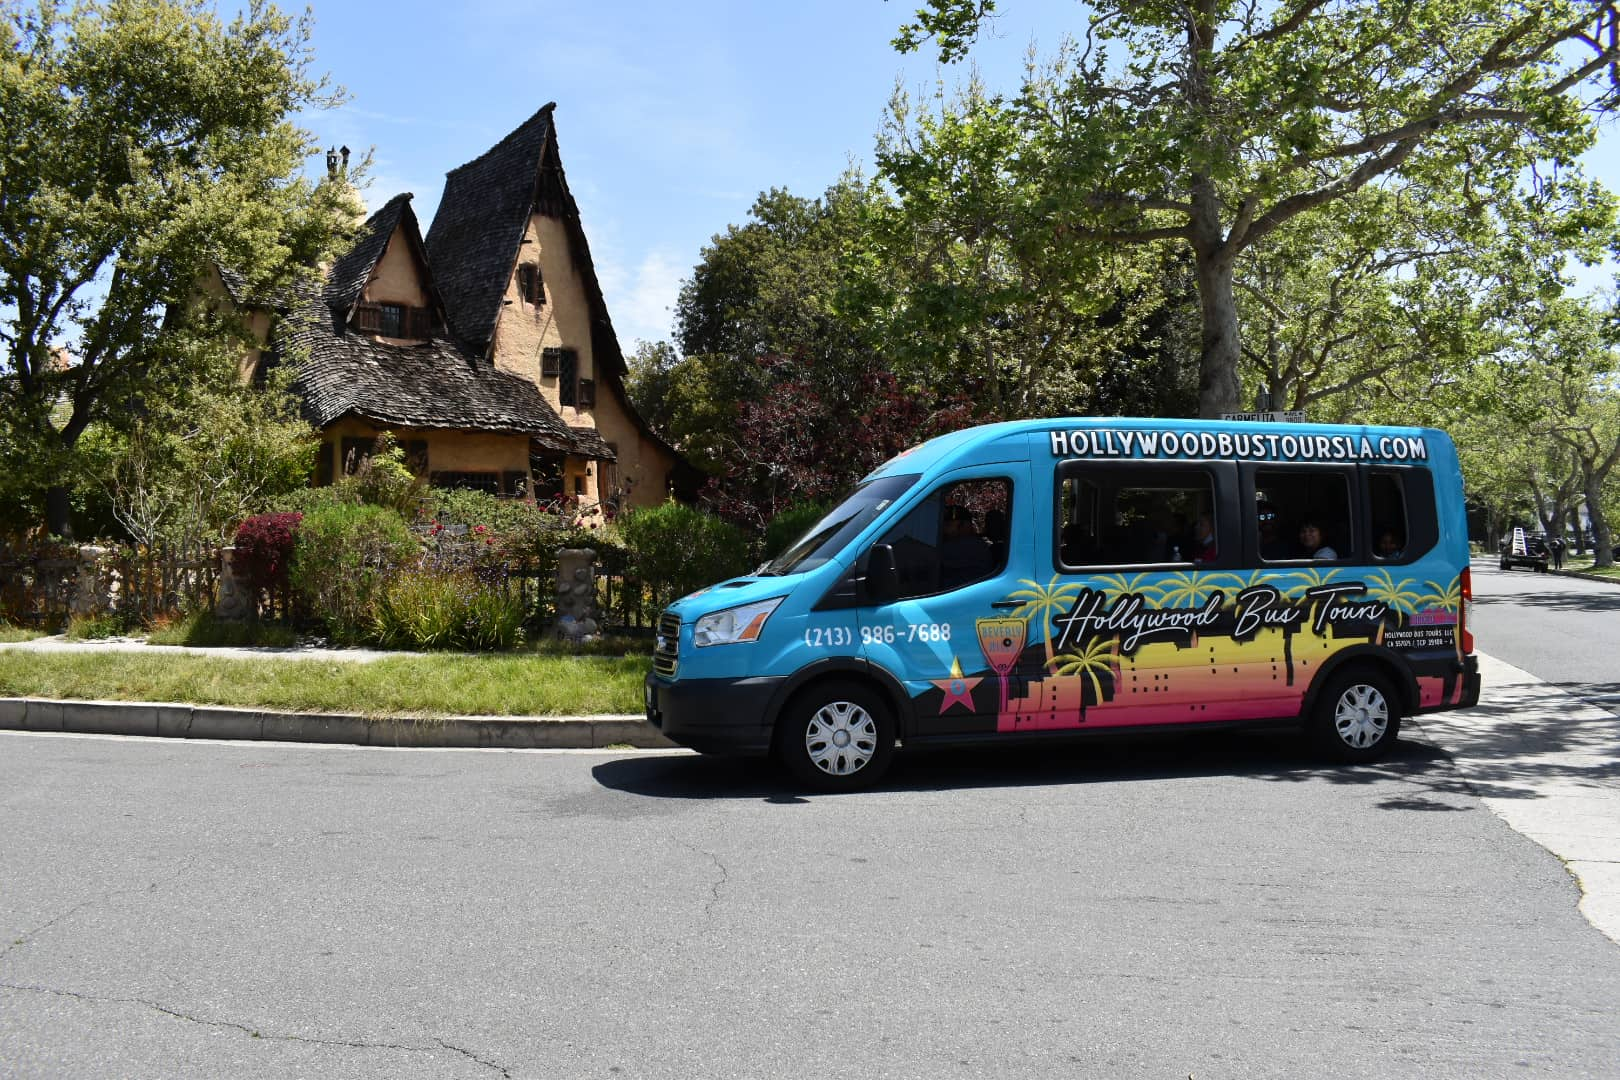 Hollywood Bus Tours - Celebrities